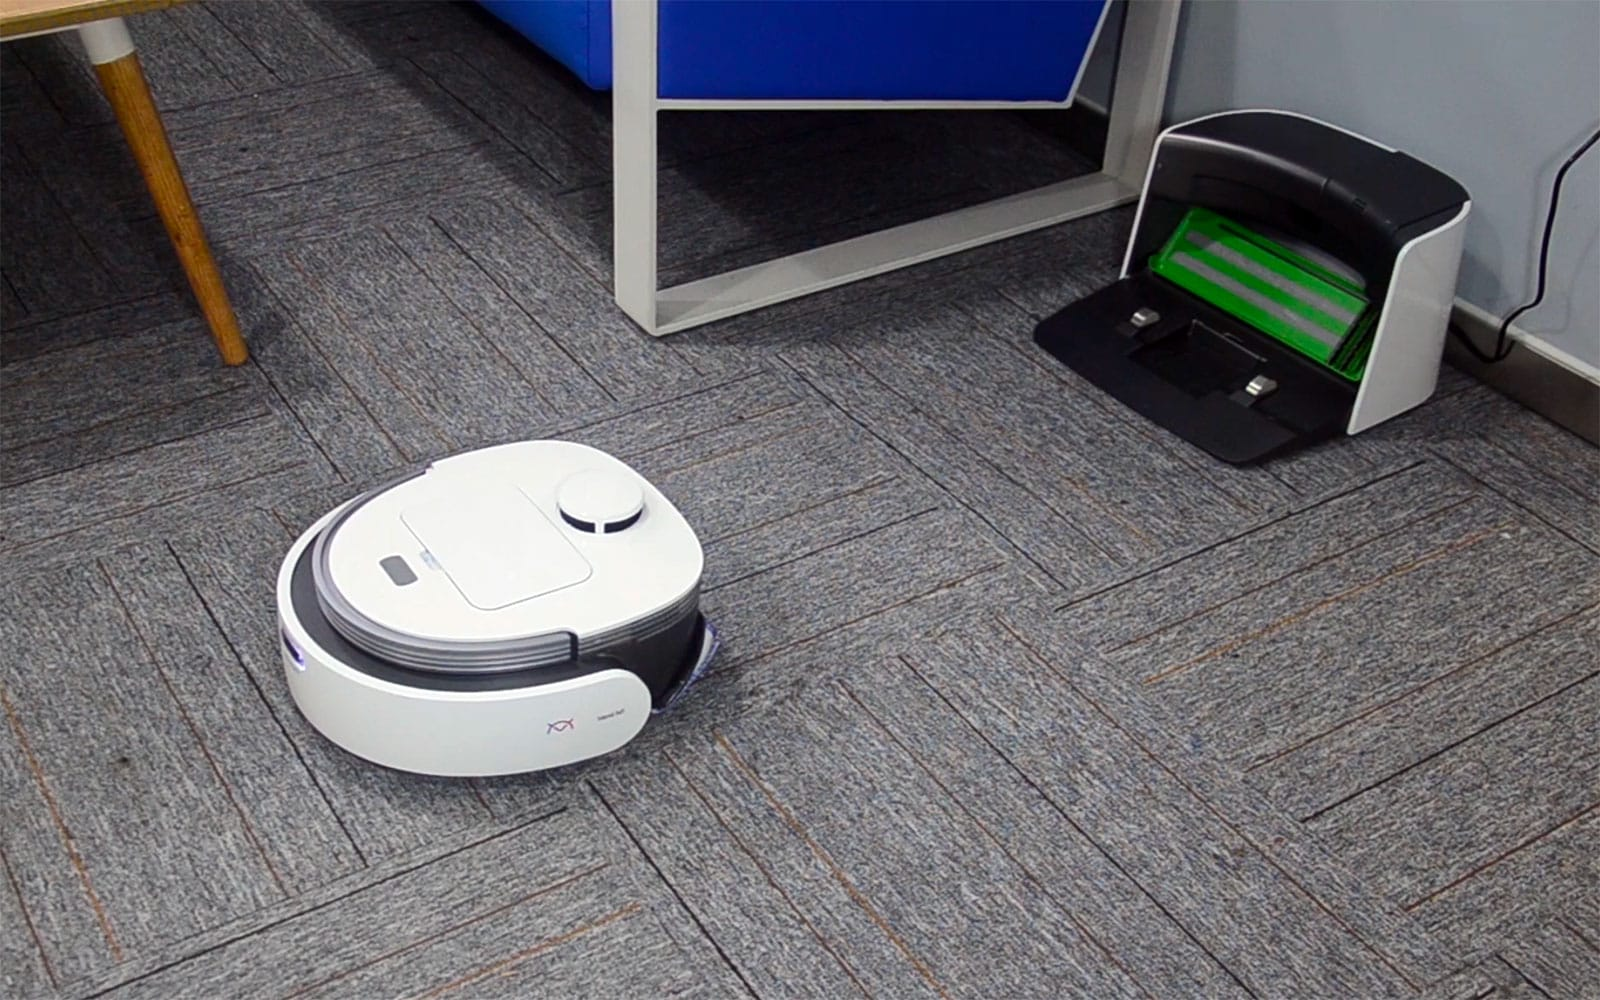 Venii N1 self-cleaning mopping robot